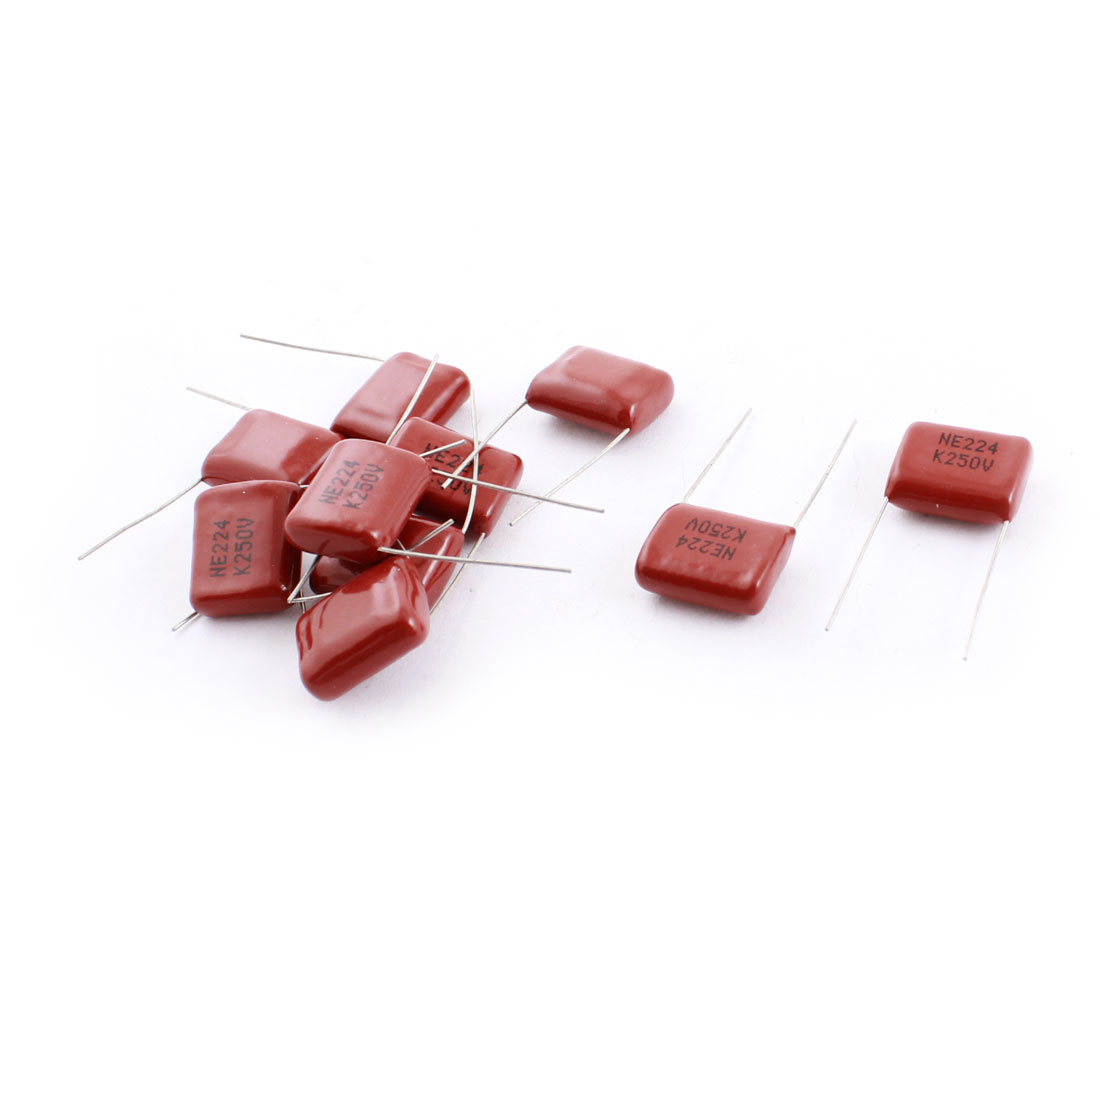 250V 224PF 220nF Radial Lead Through Hole Mount Rectangle Metallized Polyester Film Capacitor 10 Pcs